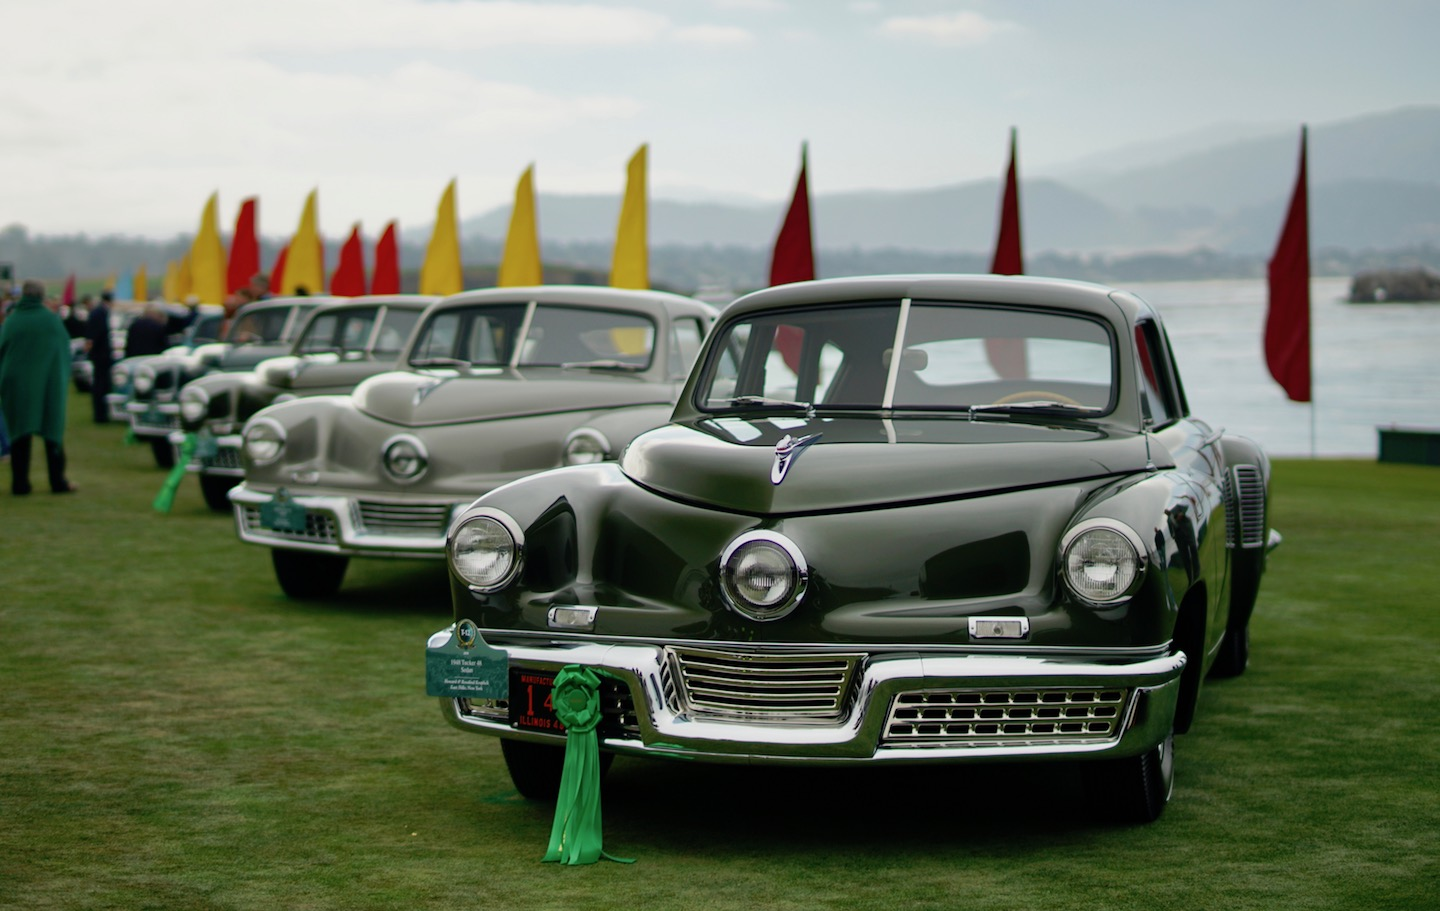 The Best of Monterey Car Week 2018 - Part 6: The Concours d'Elegance